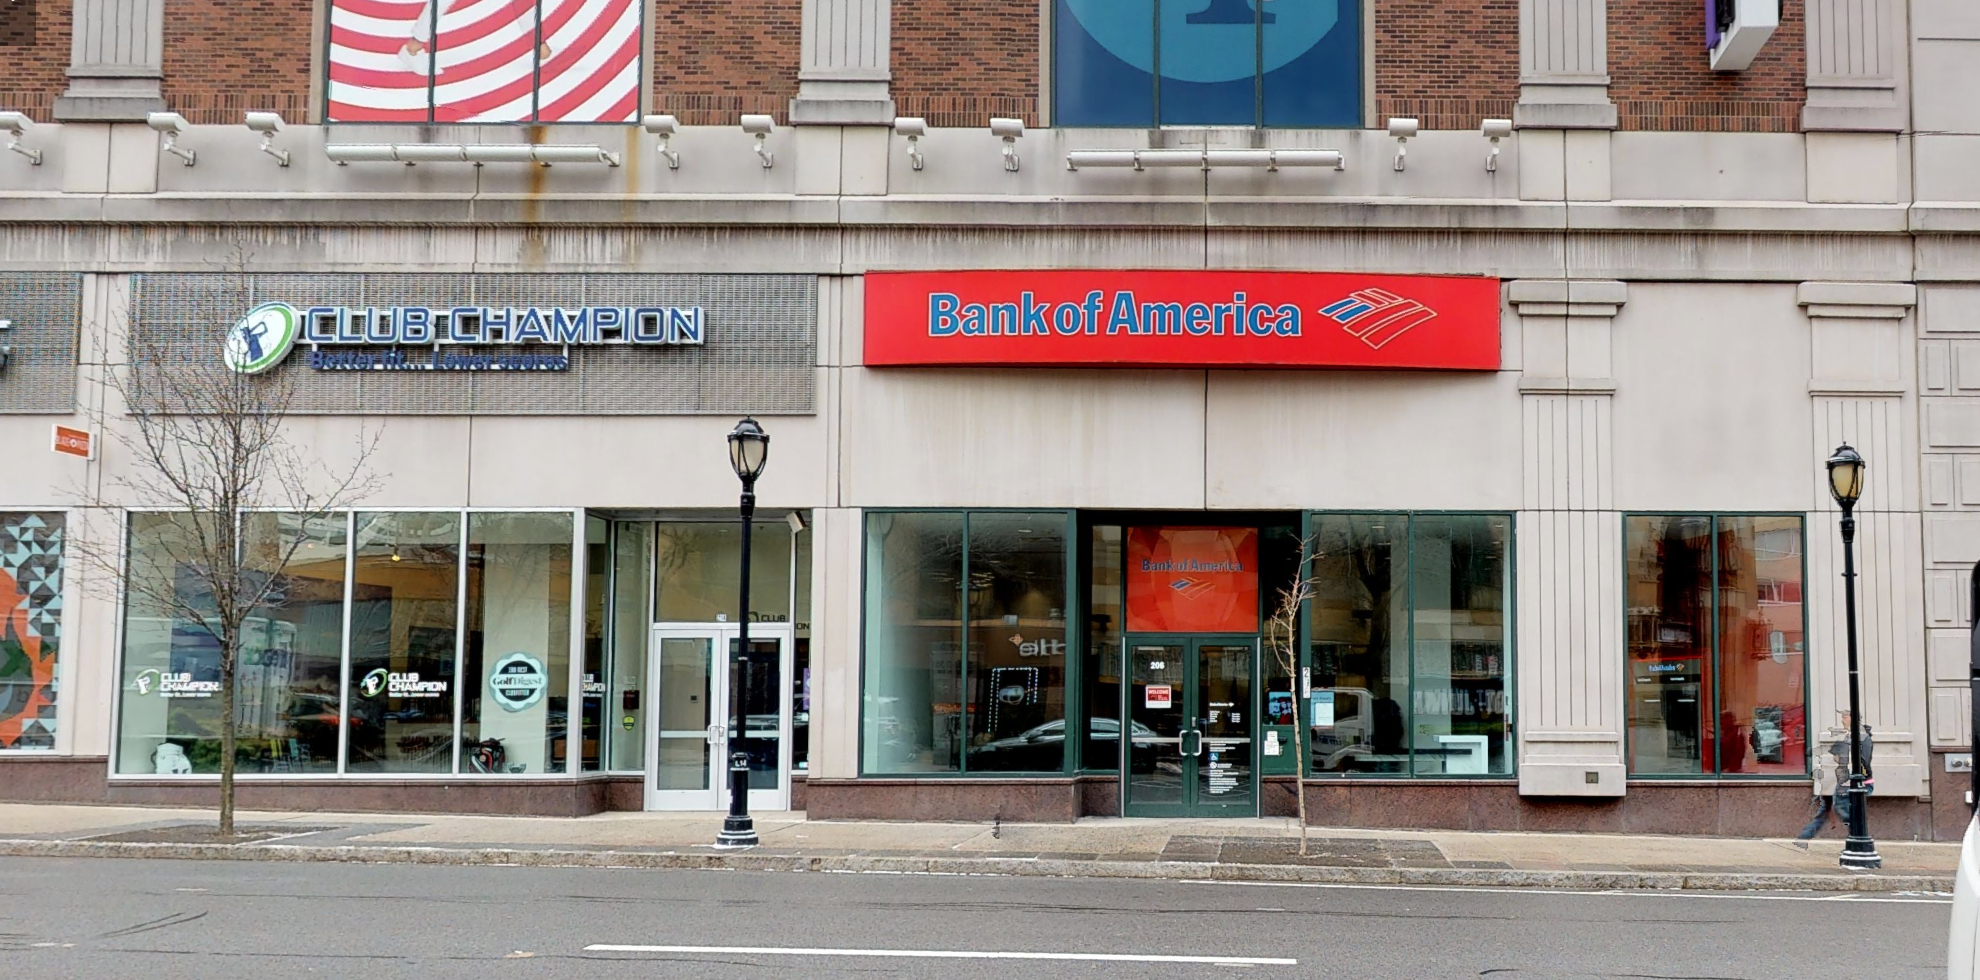 Bank of America financial center with walk-up ATM | 206 Main St, White Plains, NY 10601